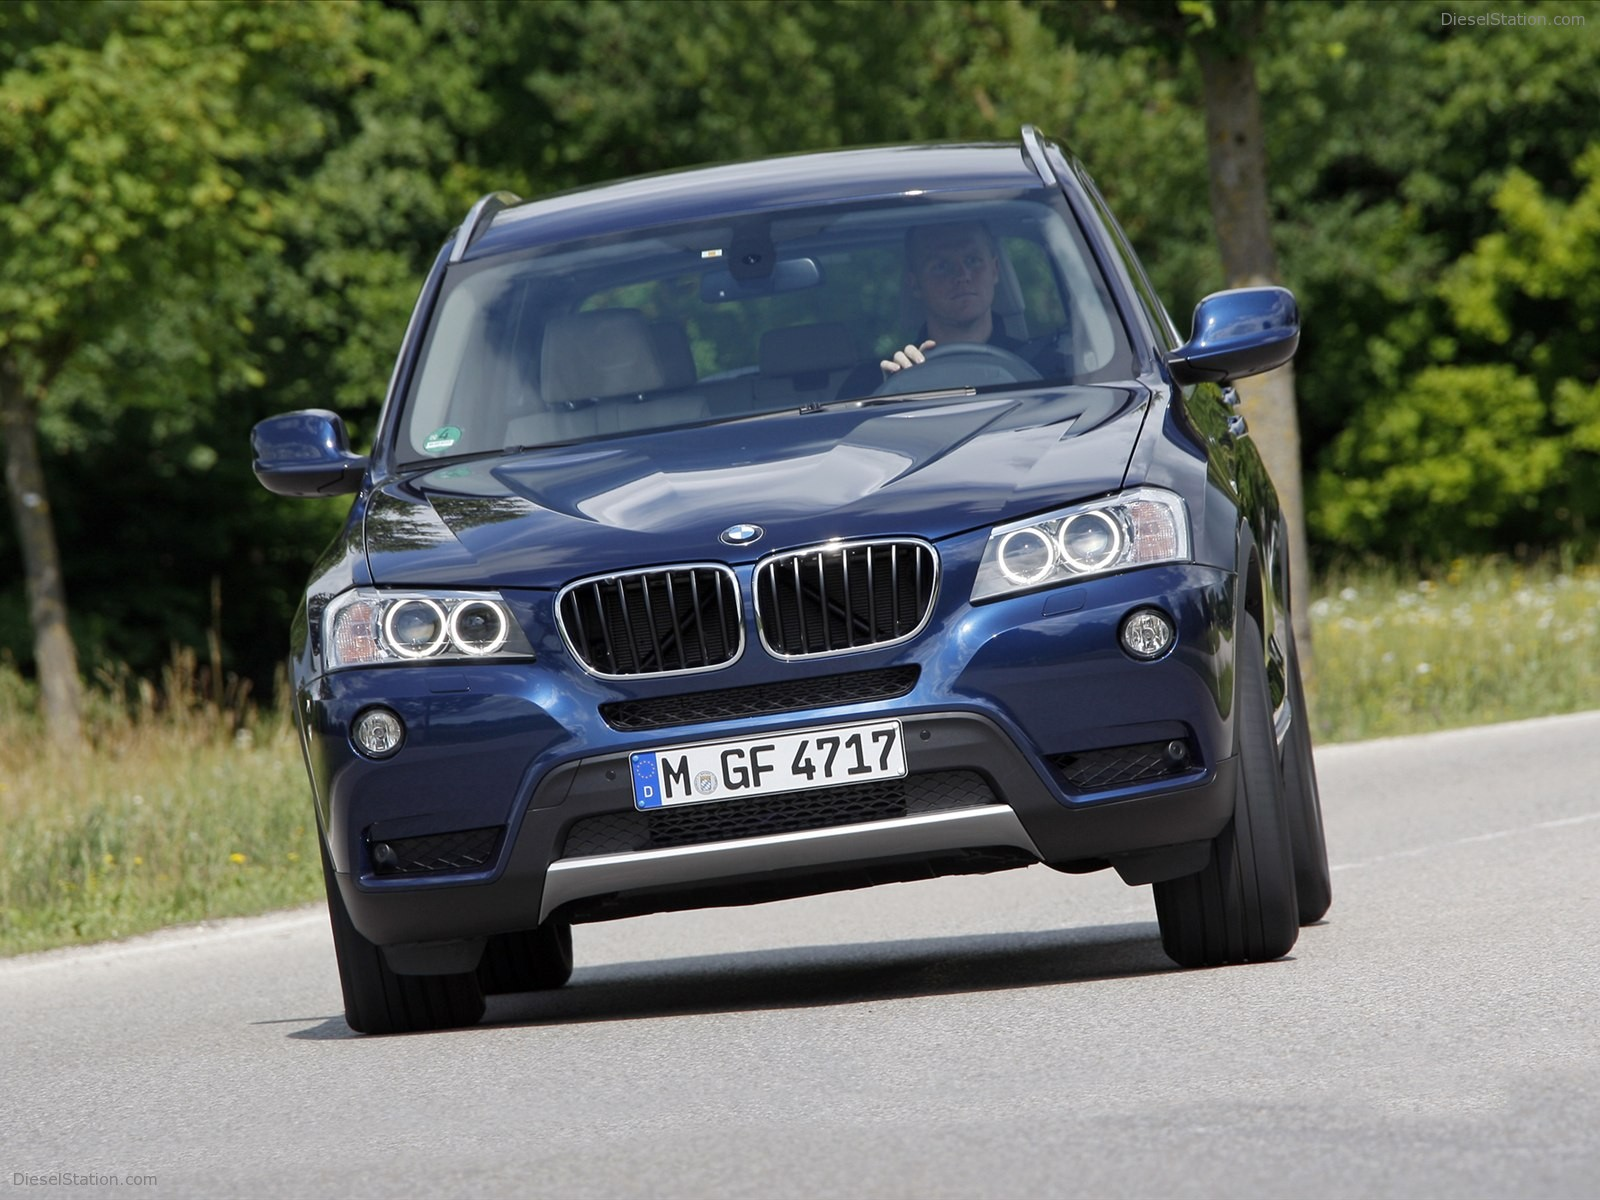 BMW X3 sDrive20i 2012 photo - 7